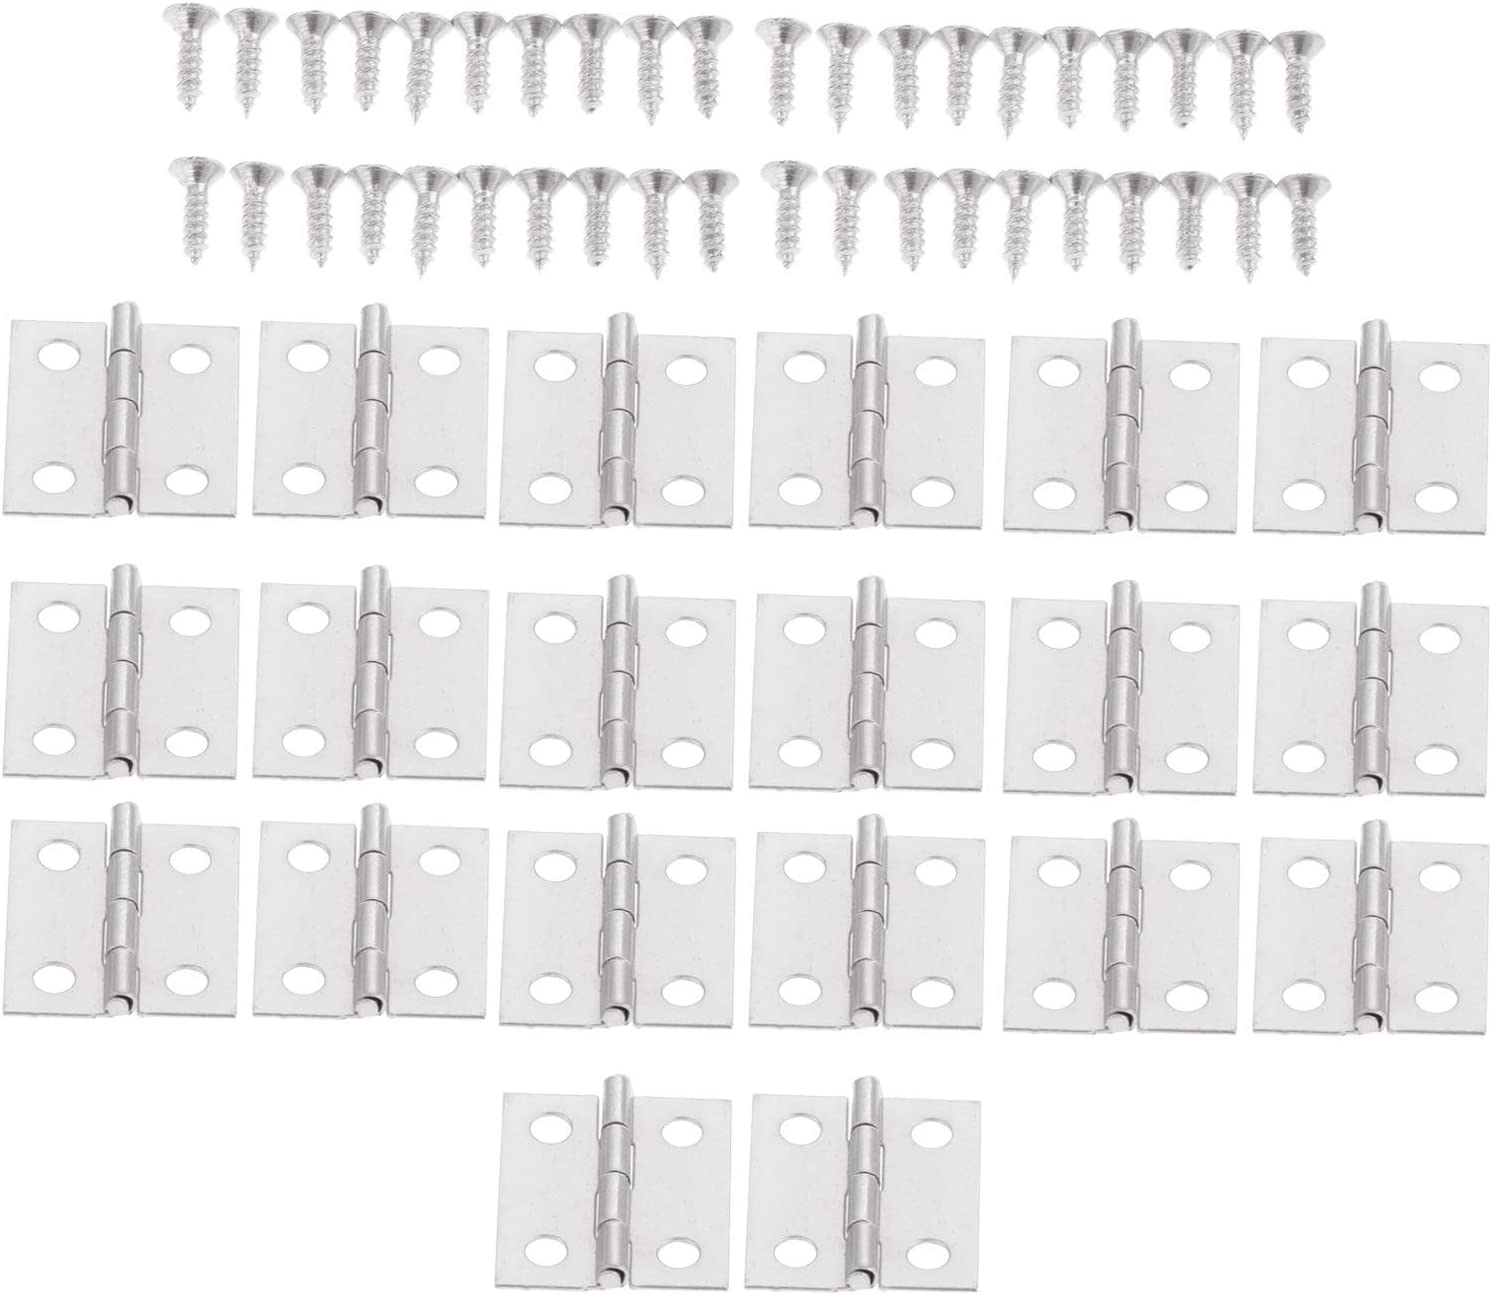 QFDM Cabinet Hinges 20Pcs Silver//Gold Door Cabinet Hinges Antique Jewelry Wood Boxes Luggage Hinges Furniture Decoration w//Screws 1816mm Parts Replacement Color : Gold